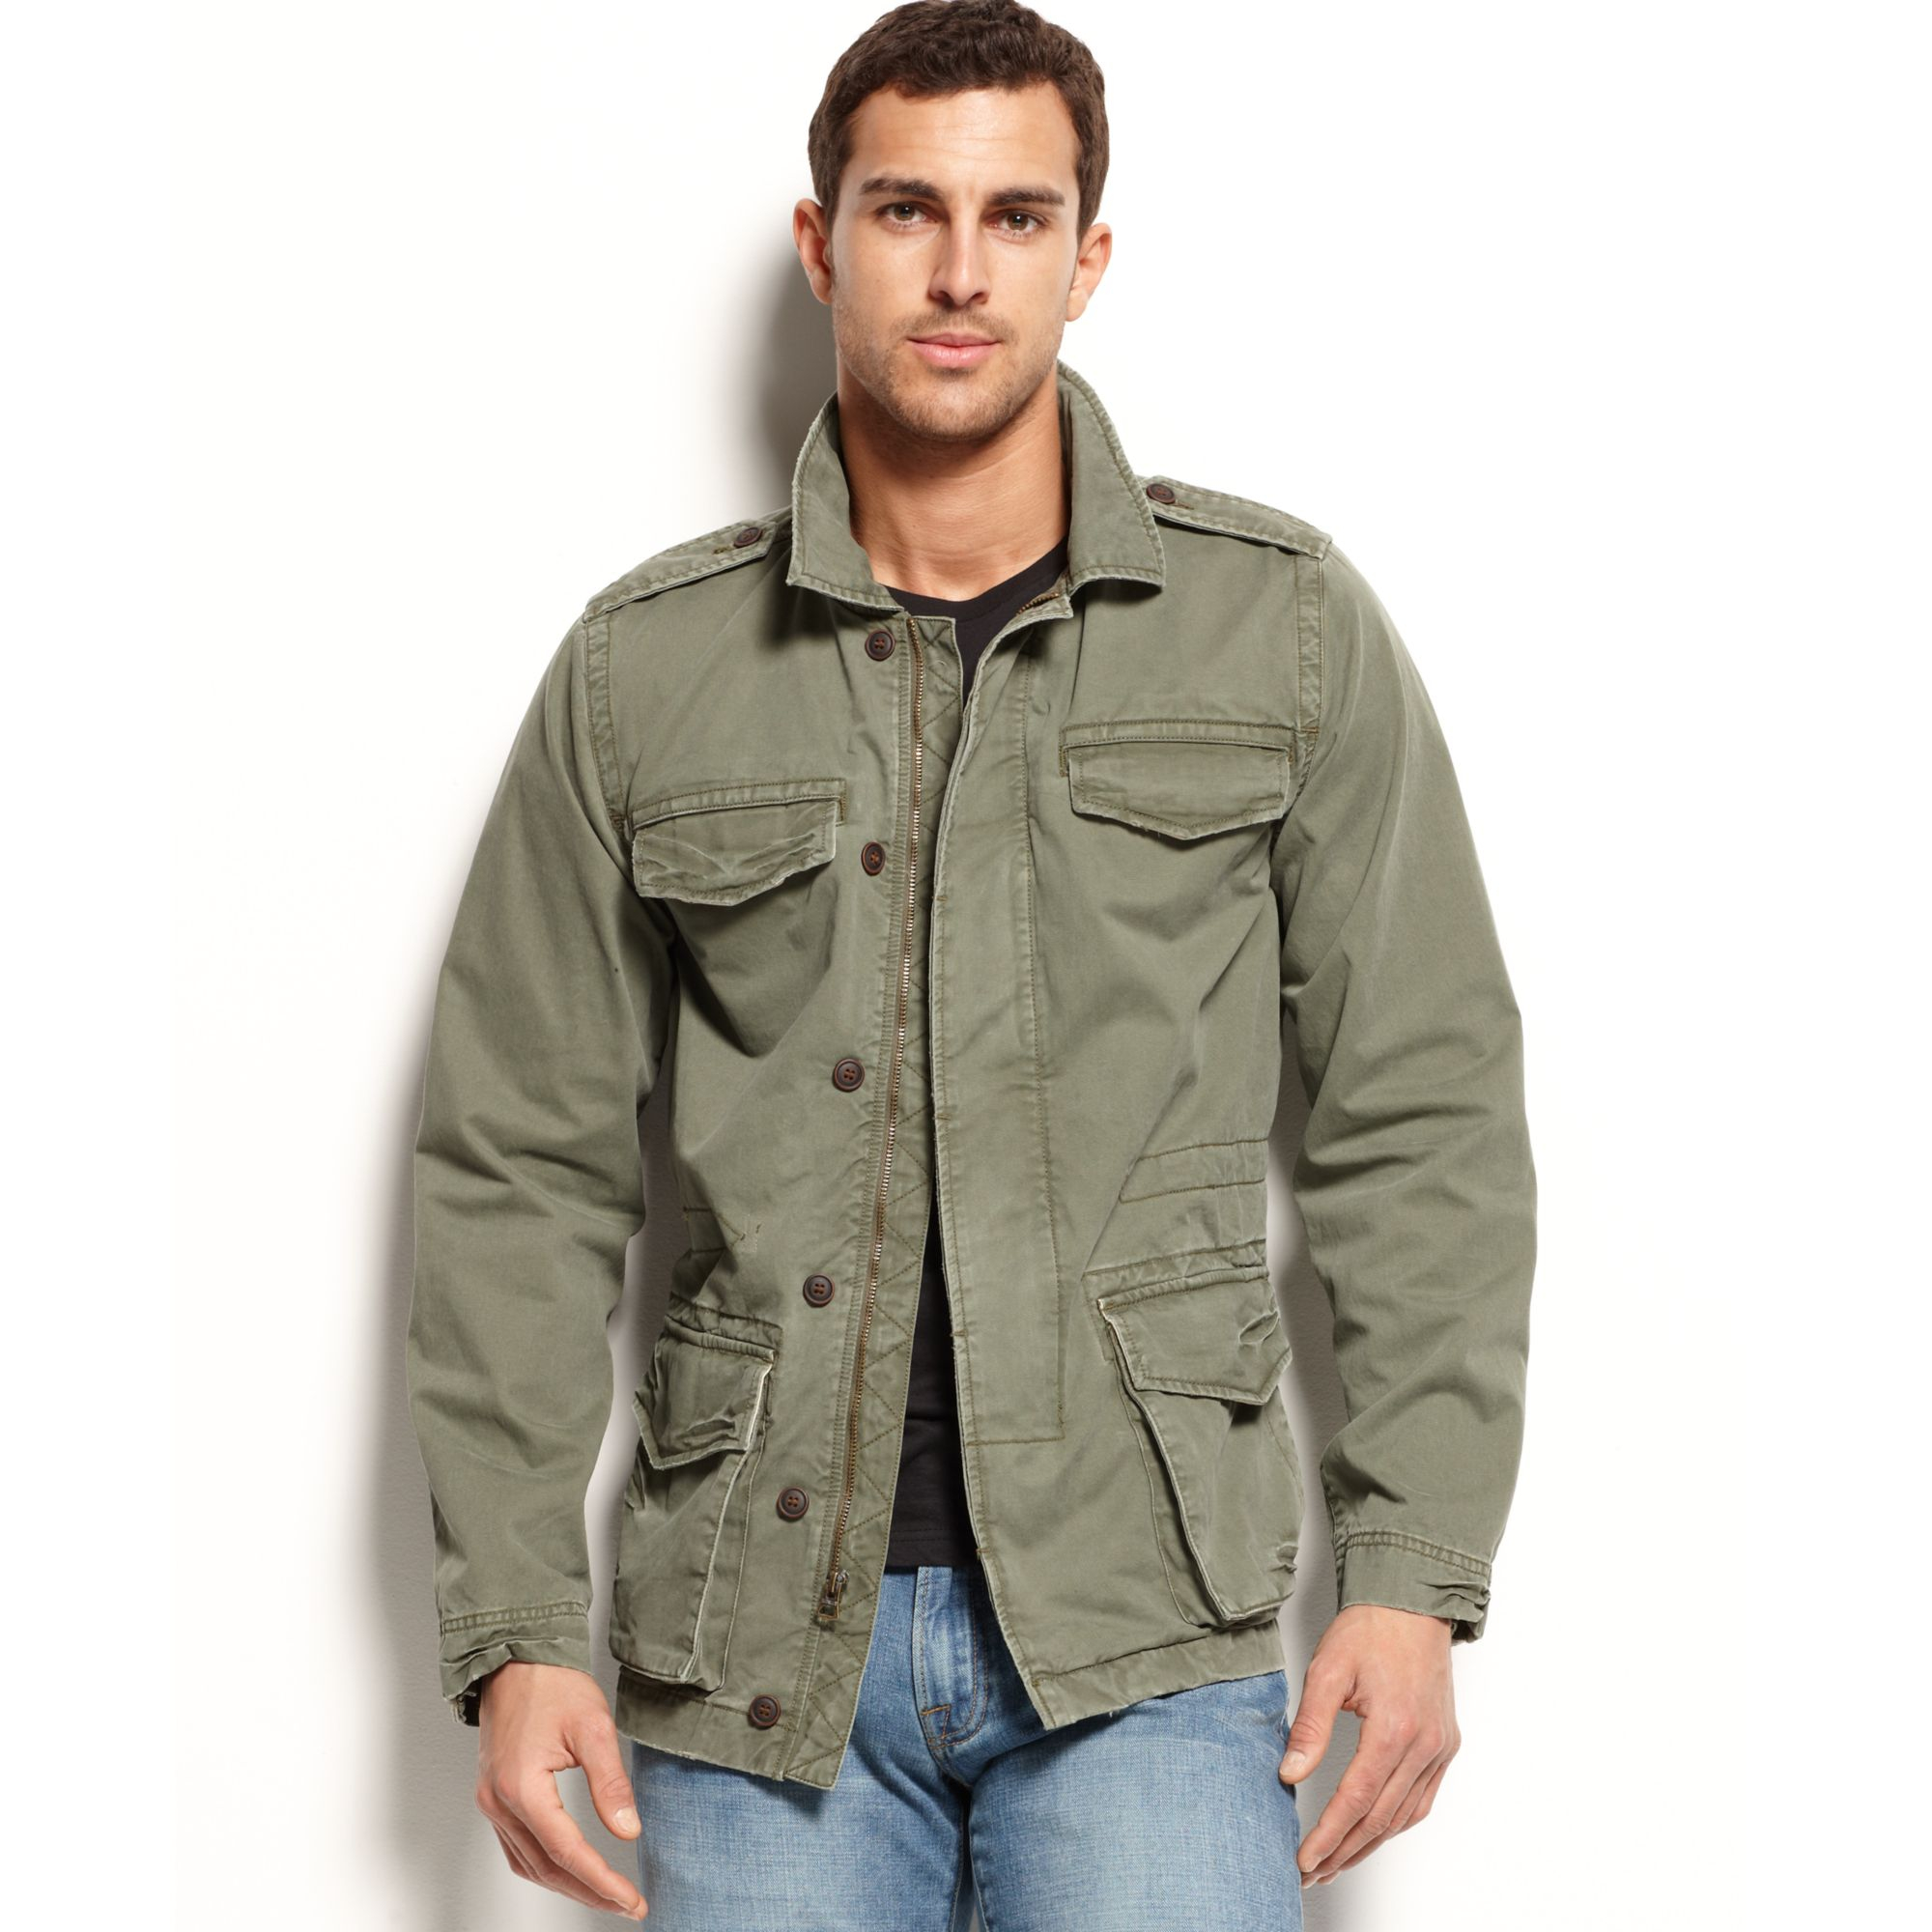 Lucky Brand M65 Field Jacket In Green For Men | Lyst